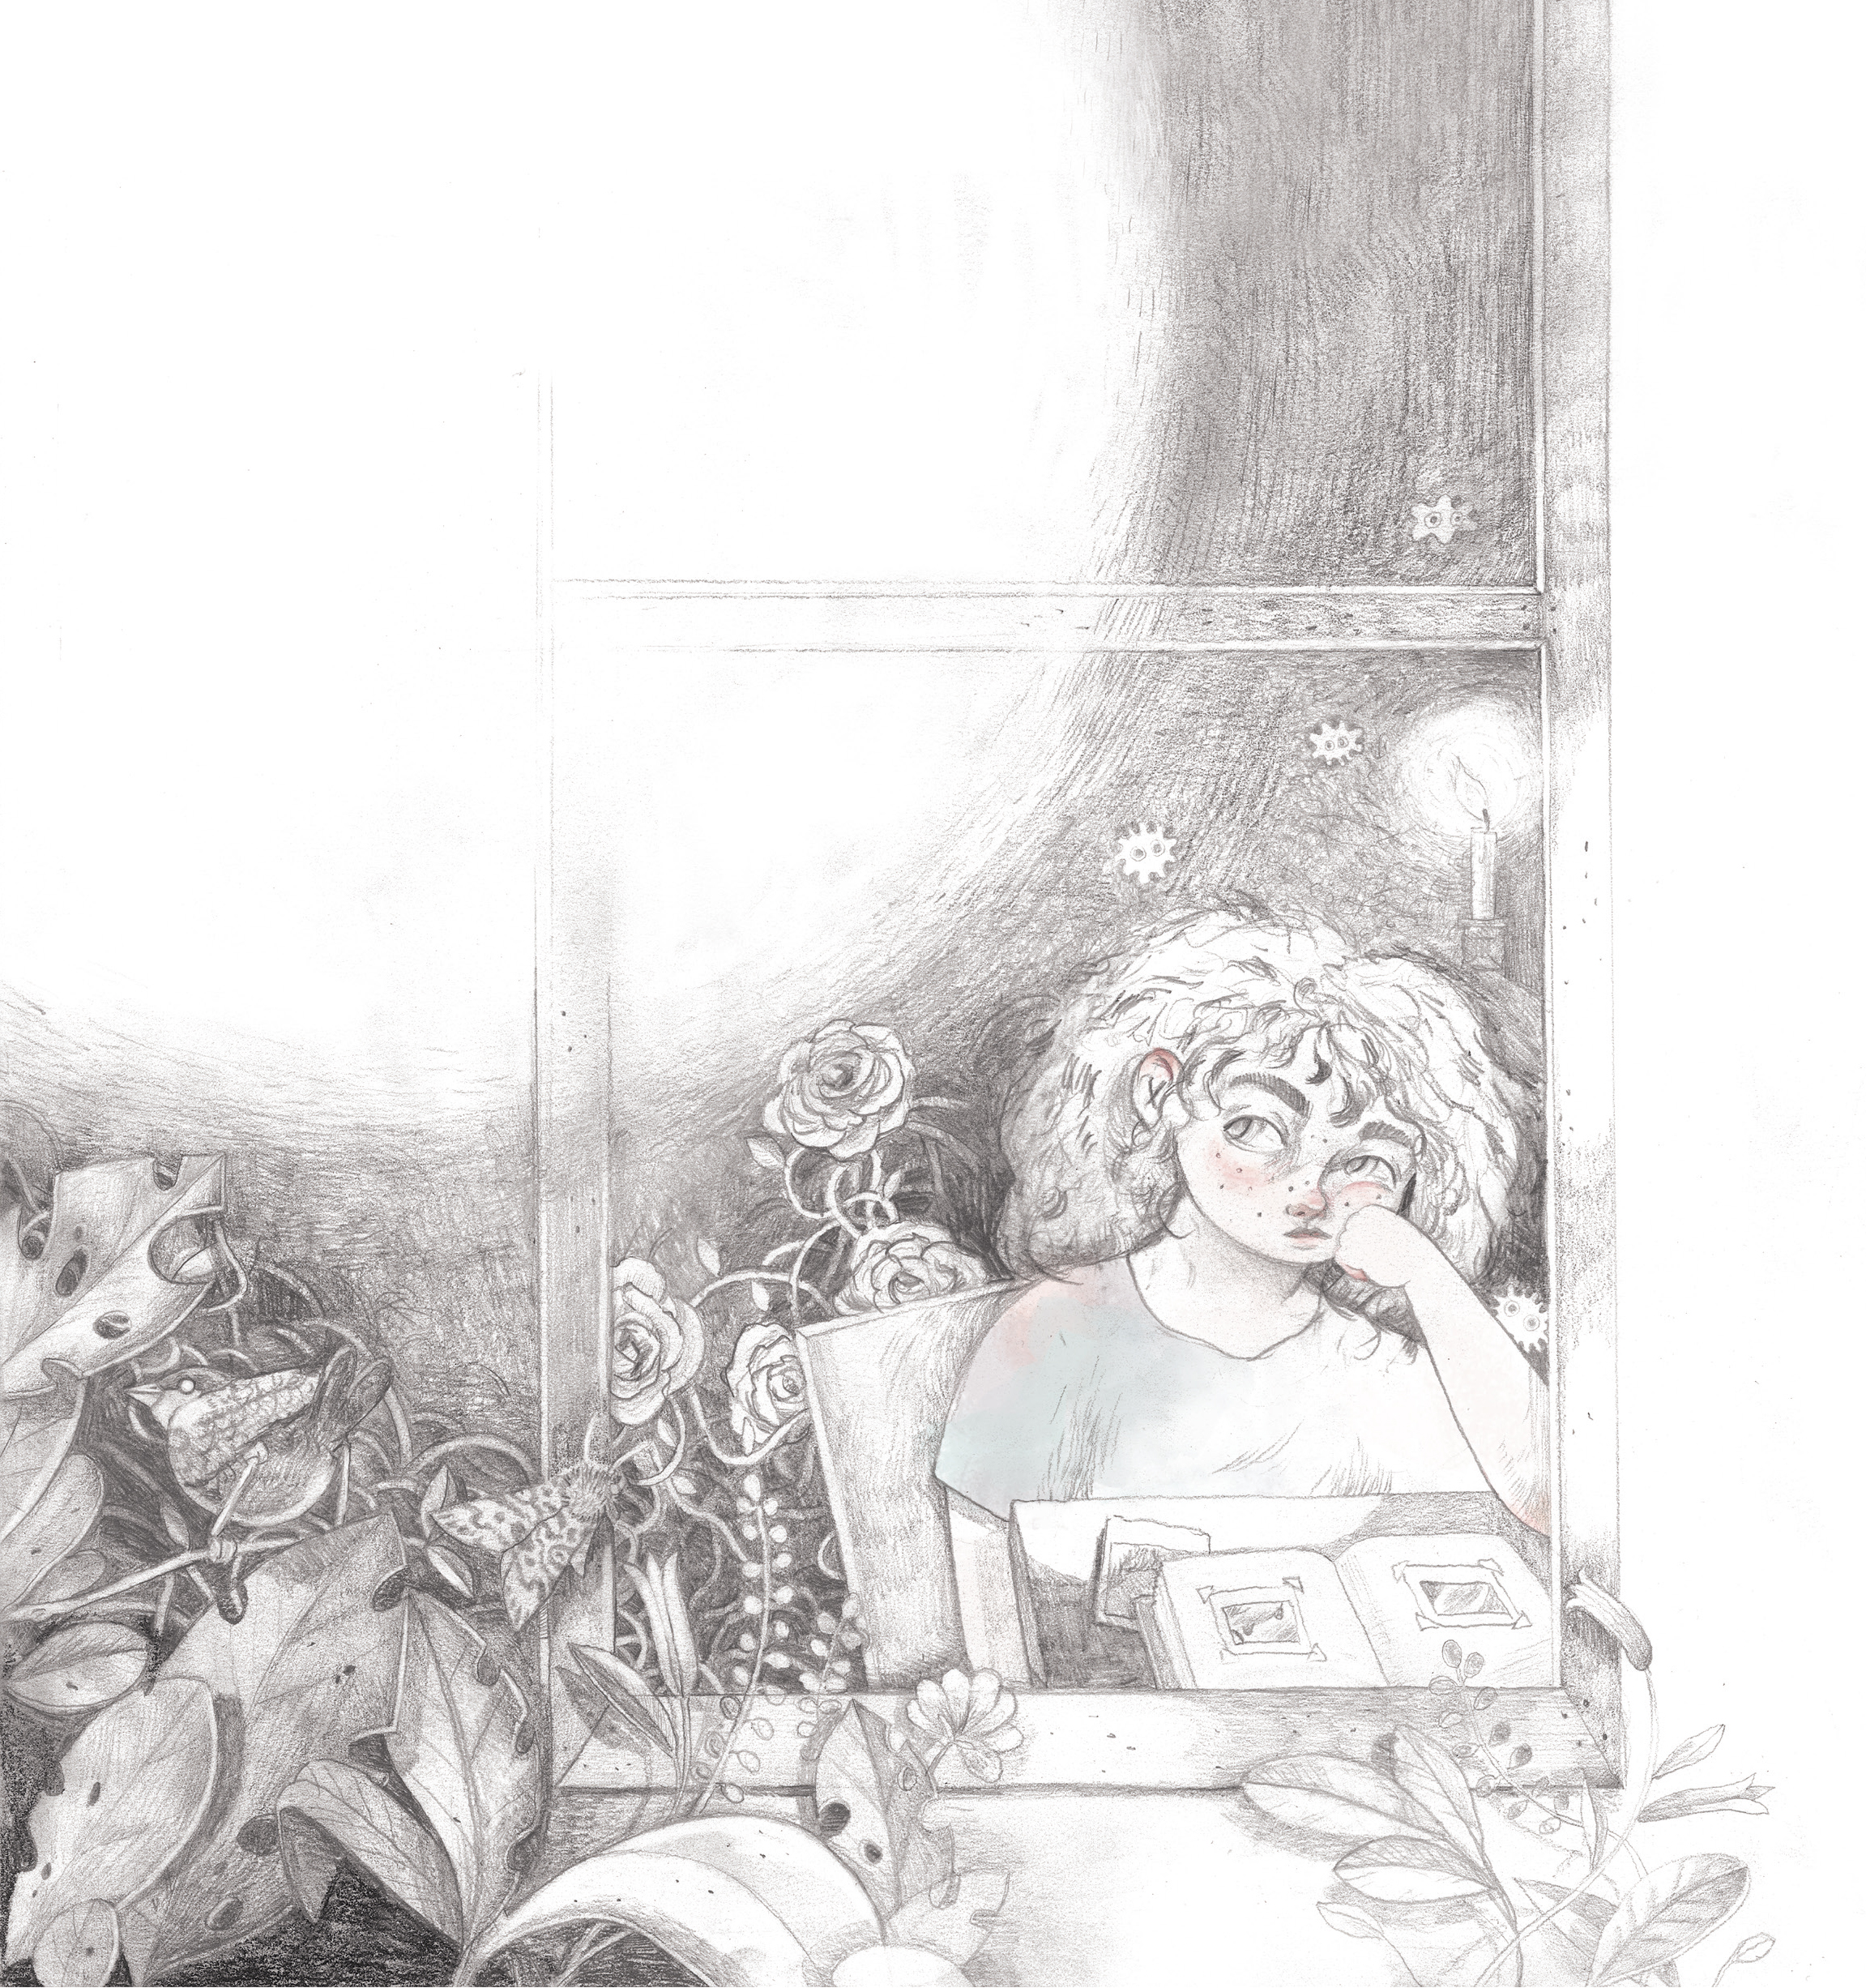 Illustration from 'The girl with amber eyes'illustrated by Frederikke Lange and written by Lissie Lundh.